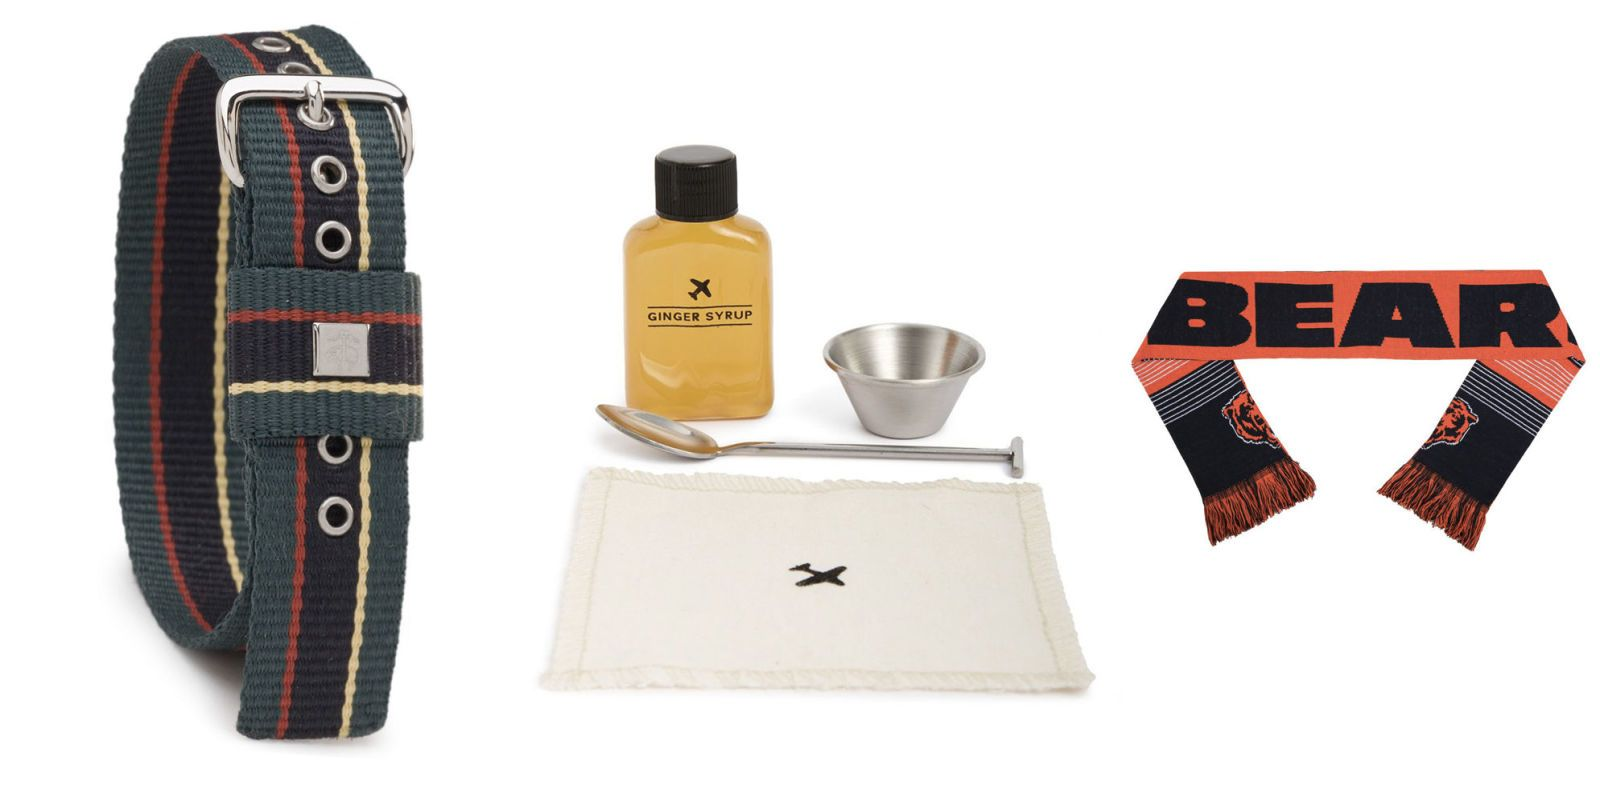 Christmas gift ideas for husband under $25